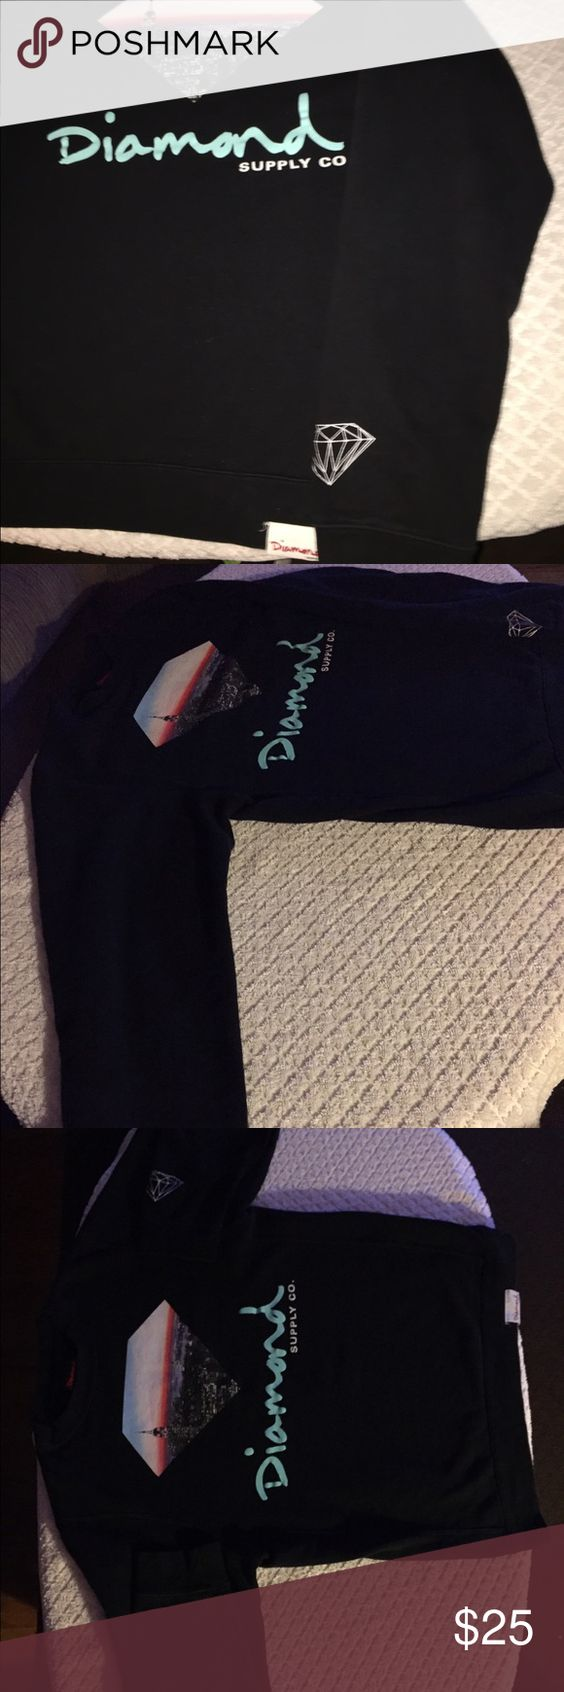 Men's Diamond Supply Co. Crewneck Sweatshirt Bought matching ones for me and my fiancé. But it is too small for him. Paid $74 for mine and $70 for his. Trying to get it off my hands. Size small to medium Diamond Supply Co. Sweaters Crew & Scoop Necks